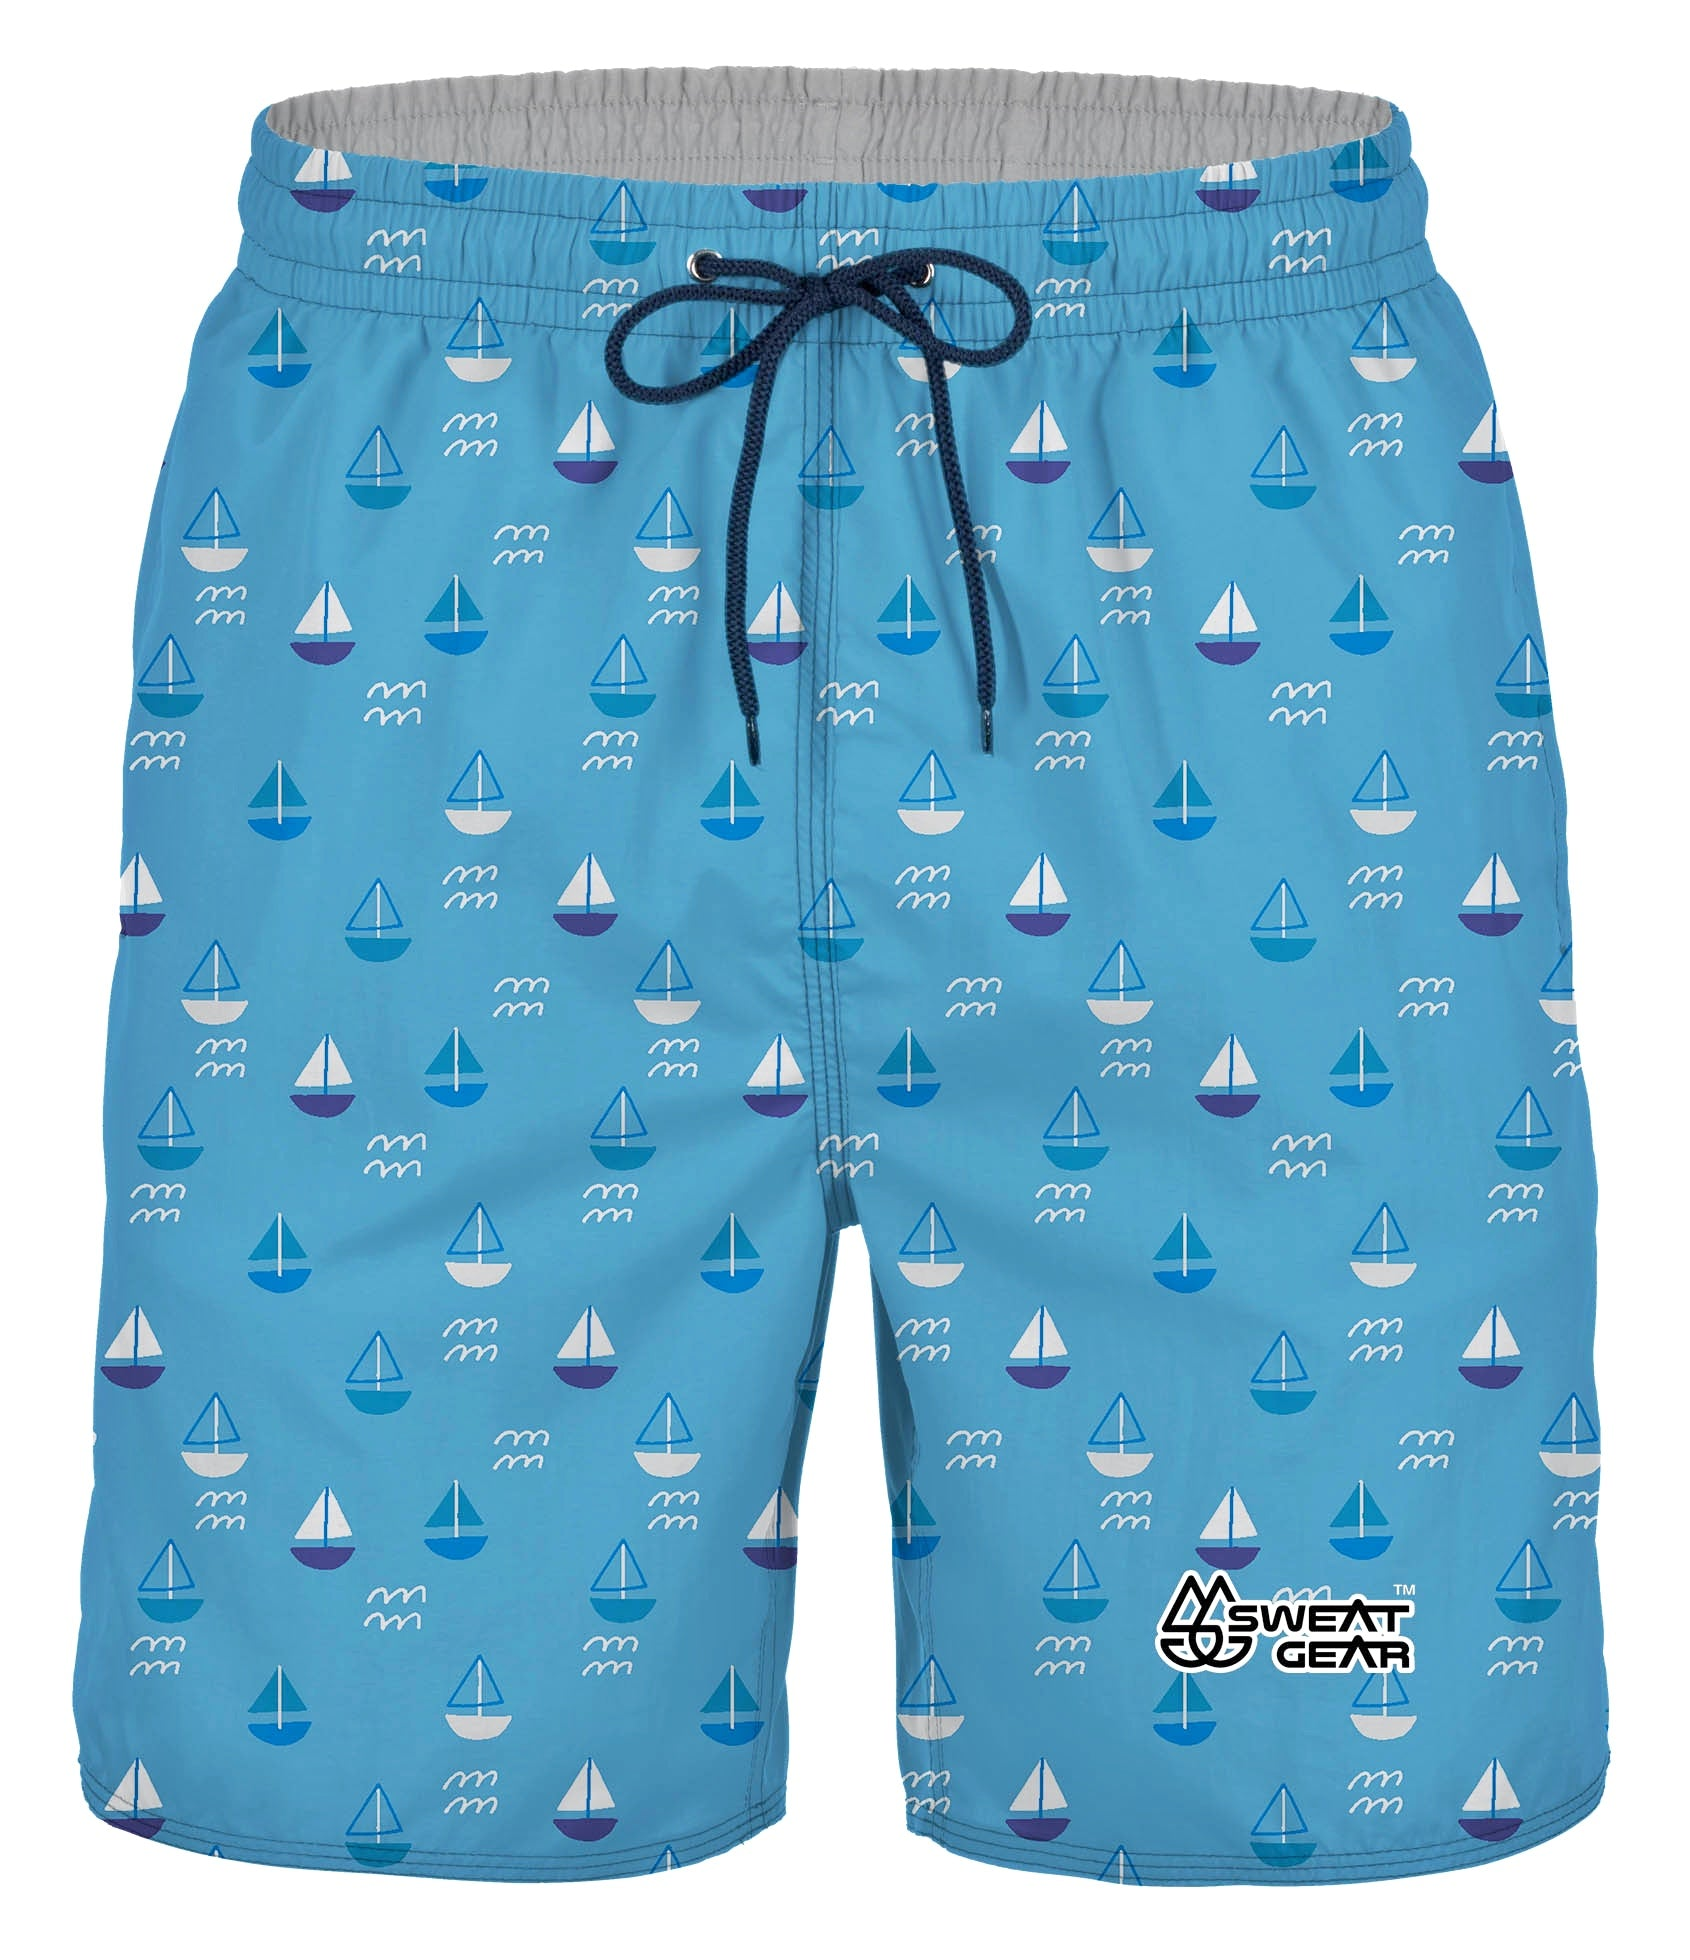 Watercraft Boardshorts (Sweatgear)